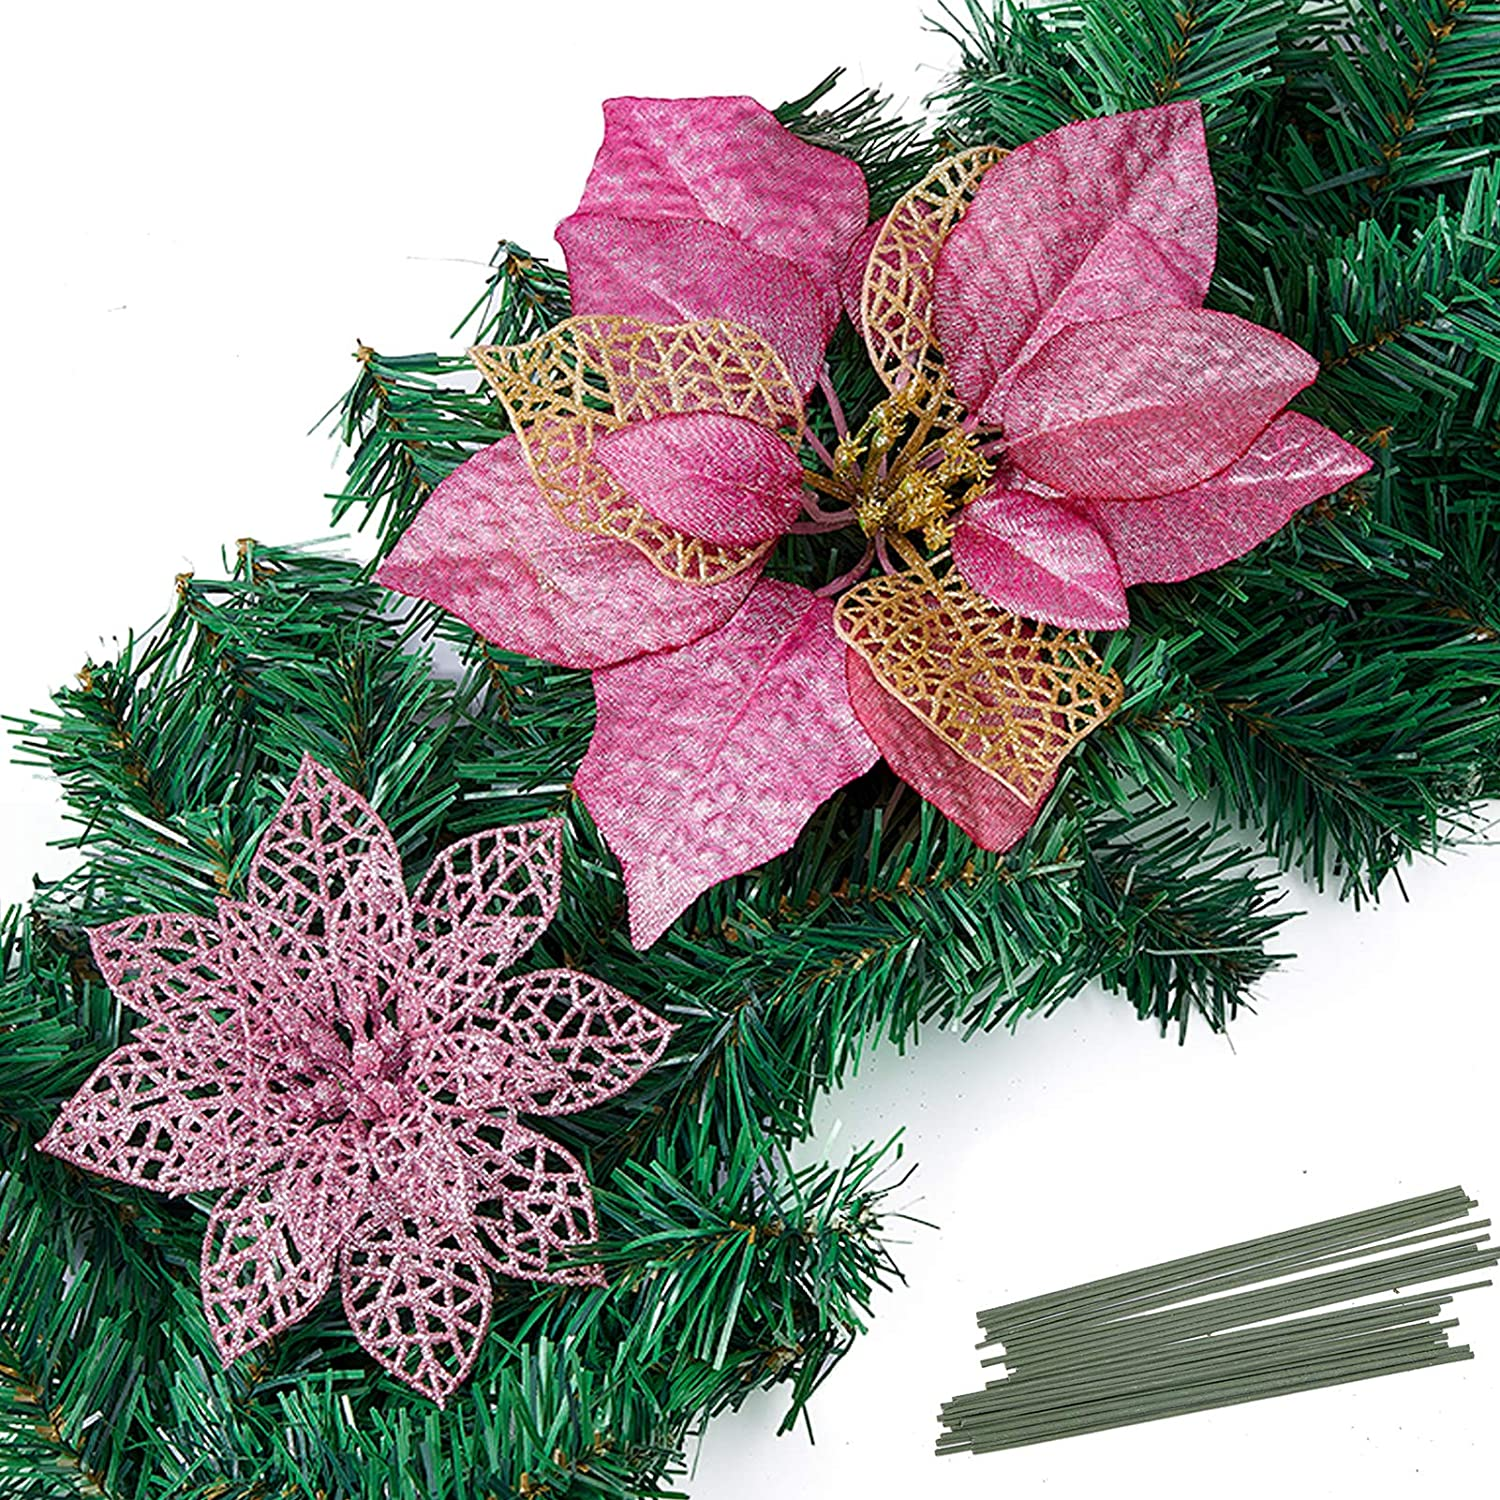 Christmas Poinsettia Ornament, Glitter Christmas Tree Decoration, Artificial Poinsettia Flower Xmas Holiday Home Decor, Pack of 24, Pink